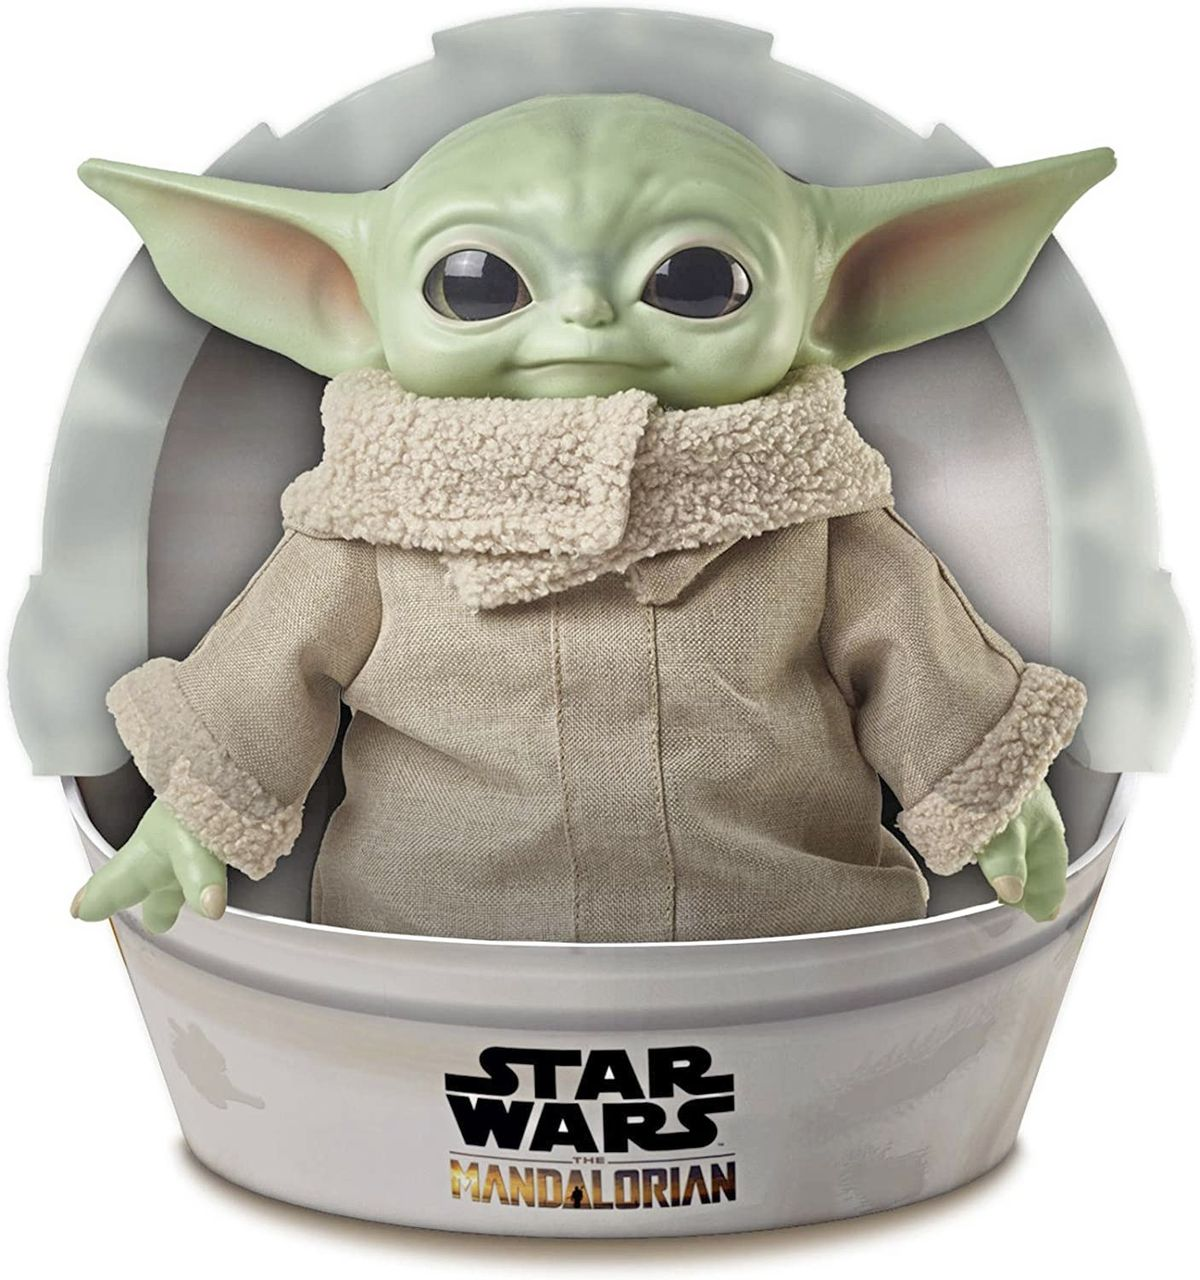 The Child or 'Baby Yoda' from The Mandalorian Star Wars TV series has proven a popular toy this year. There are many different versions of the doll available.